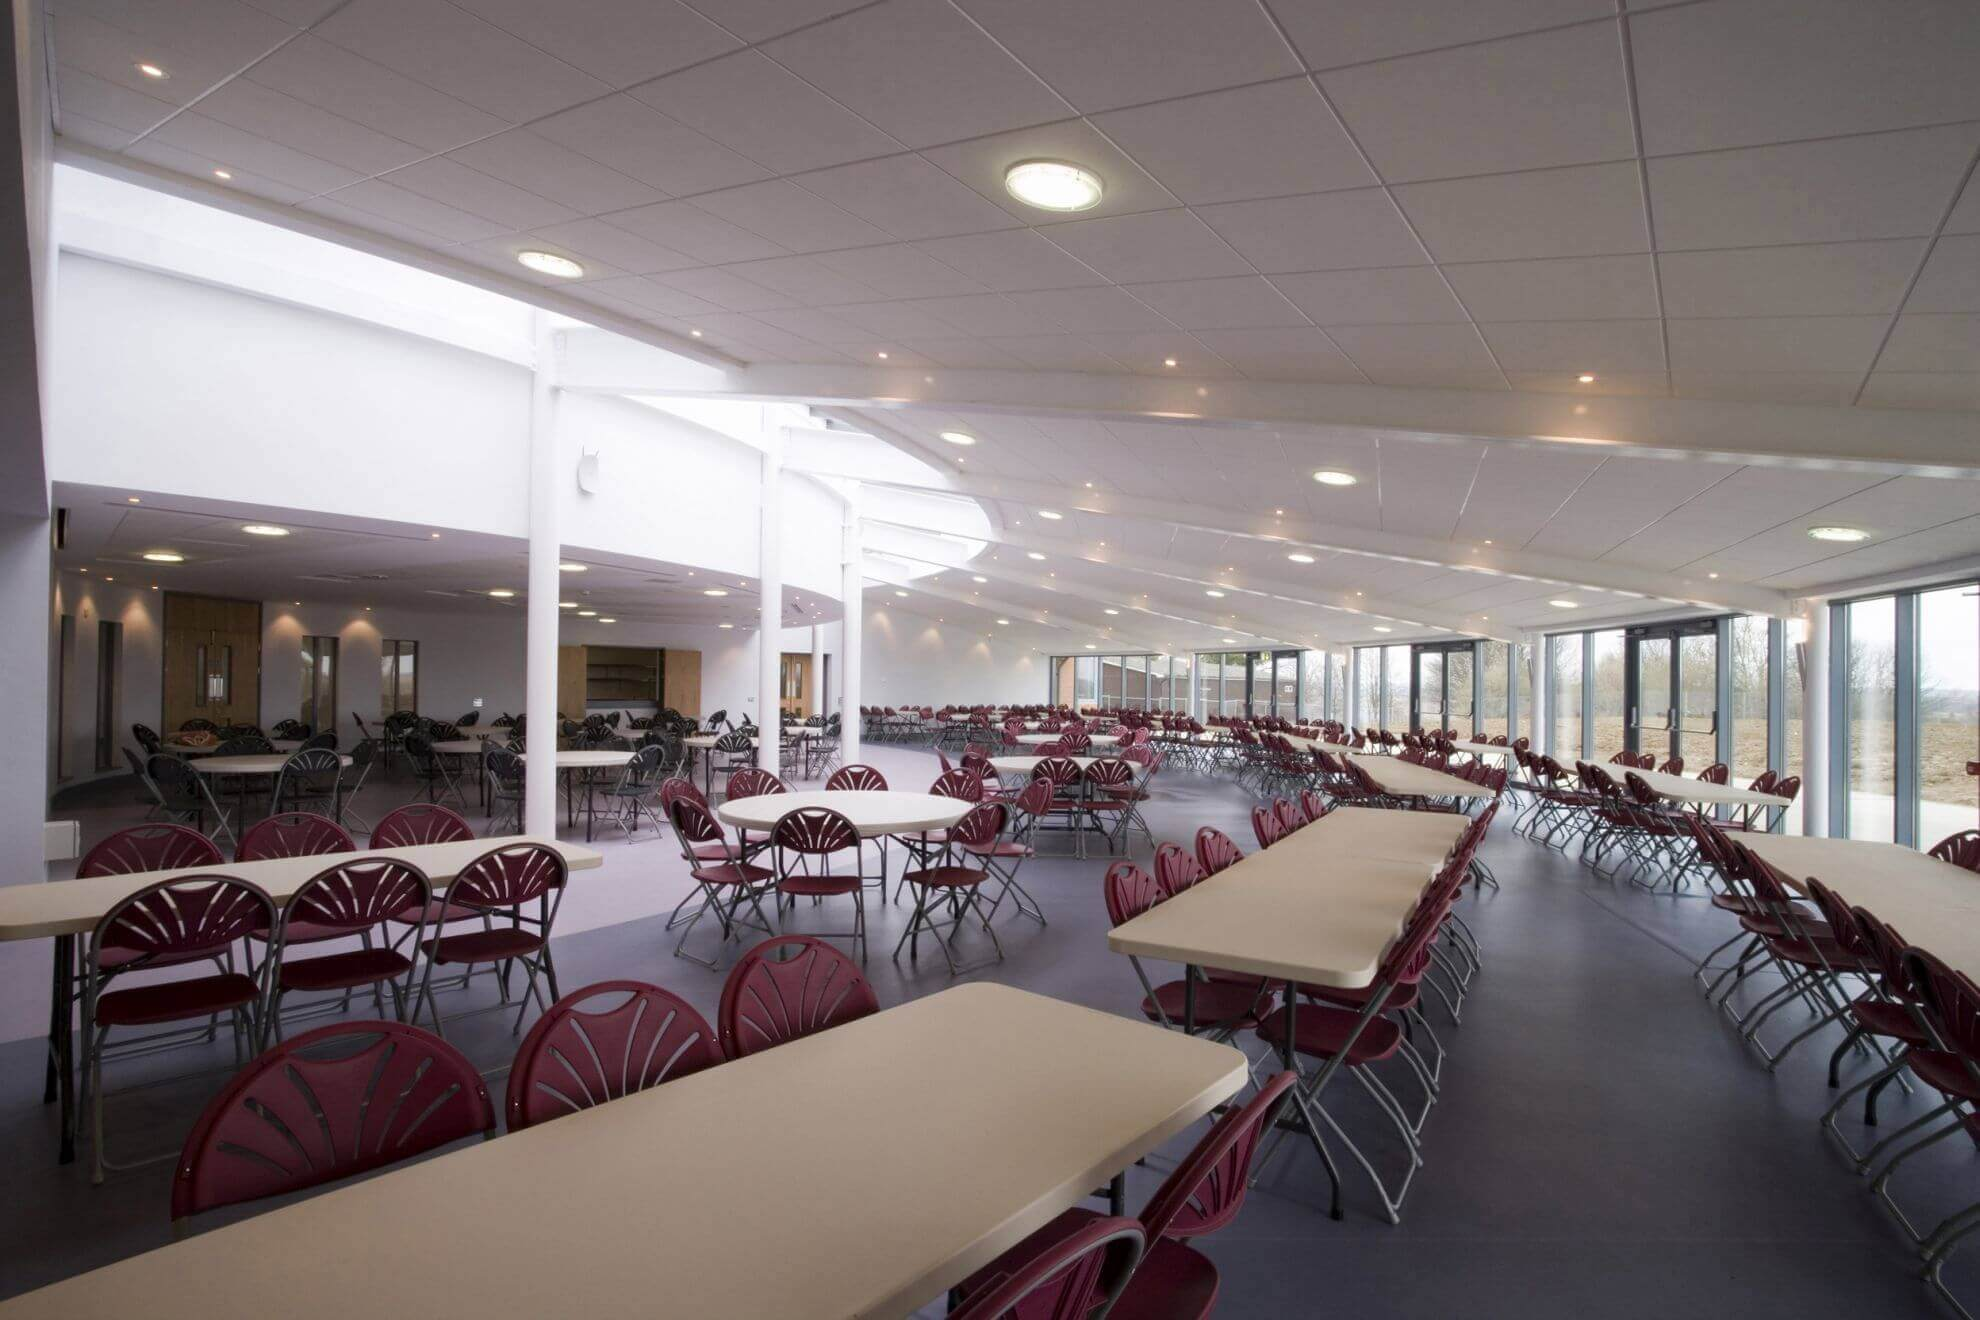 A_Bedford Modern School_Hall interior 1